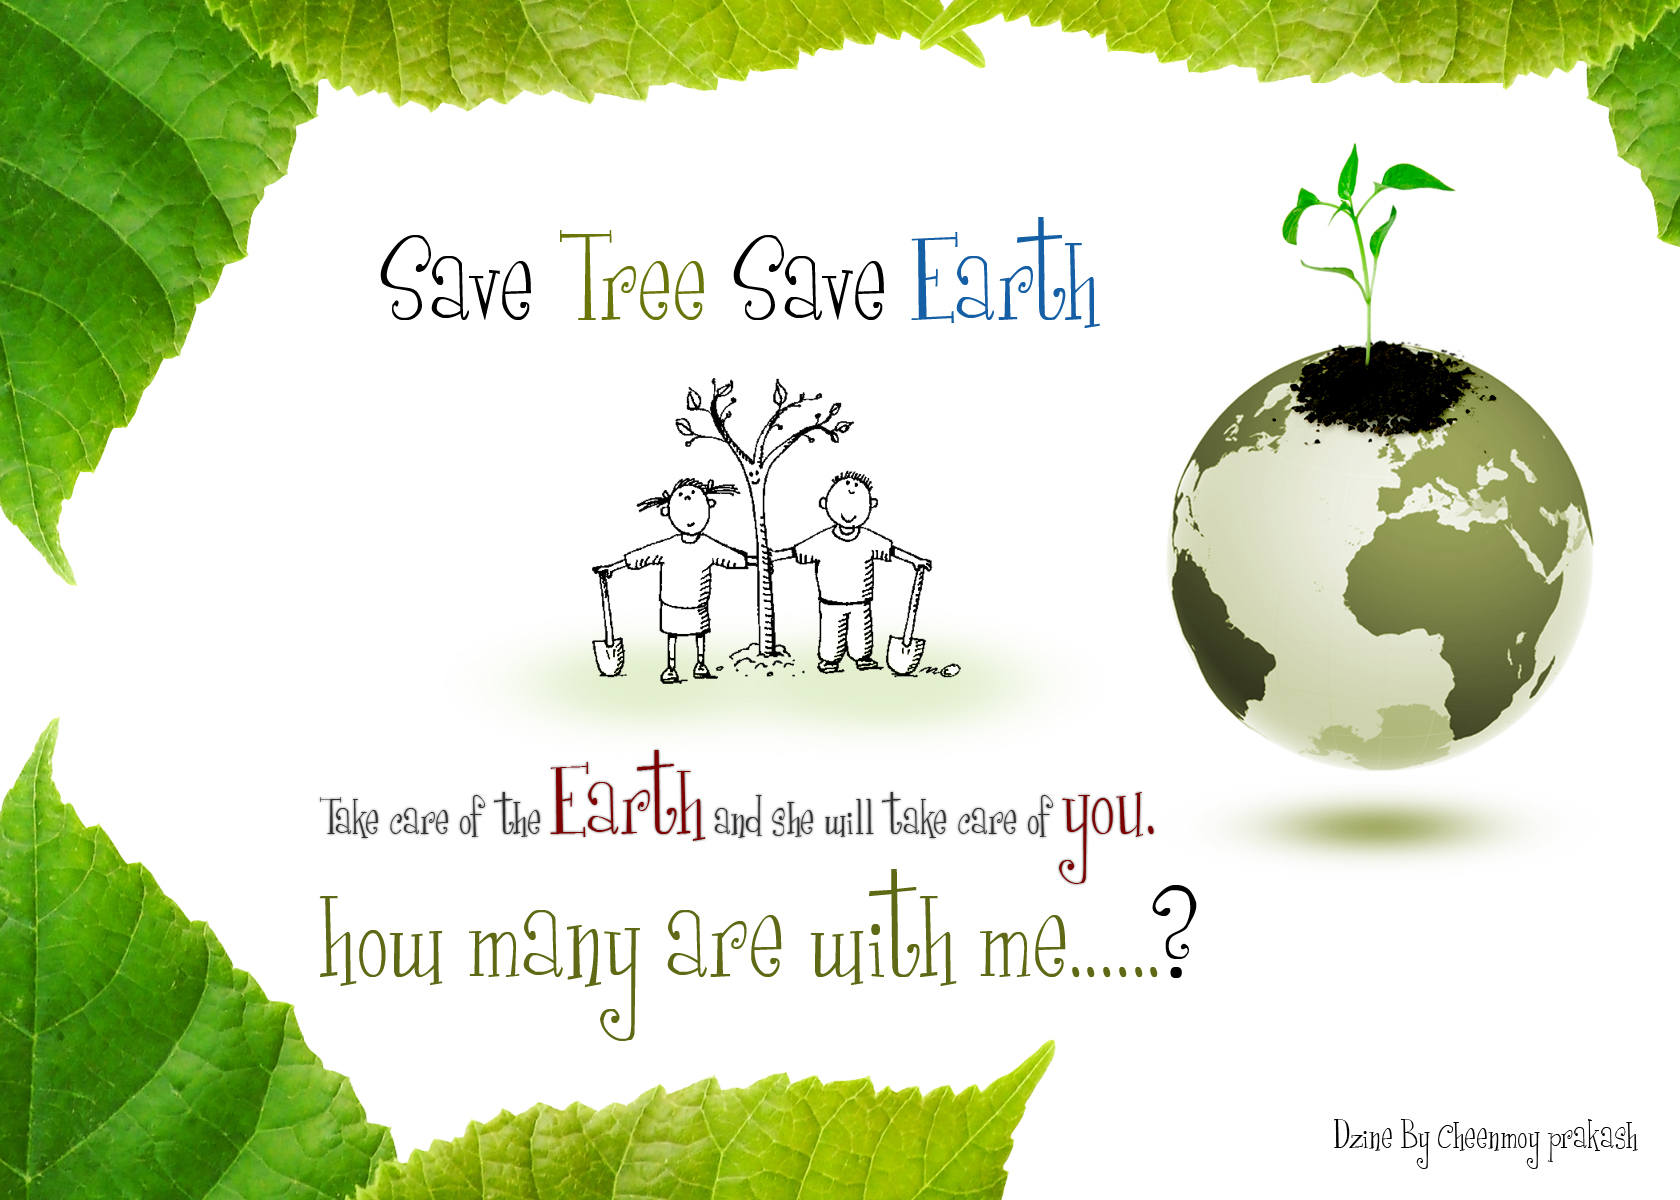 007 Original 243333 Io8htun6zsh7vh4ydejt5kgad How Can We Save Trees Essay Marvelous To In Hindi Telugu Full